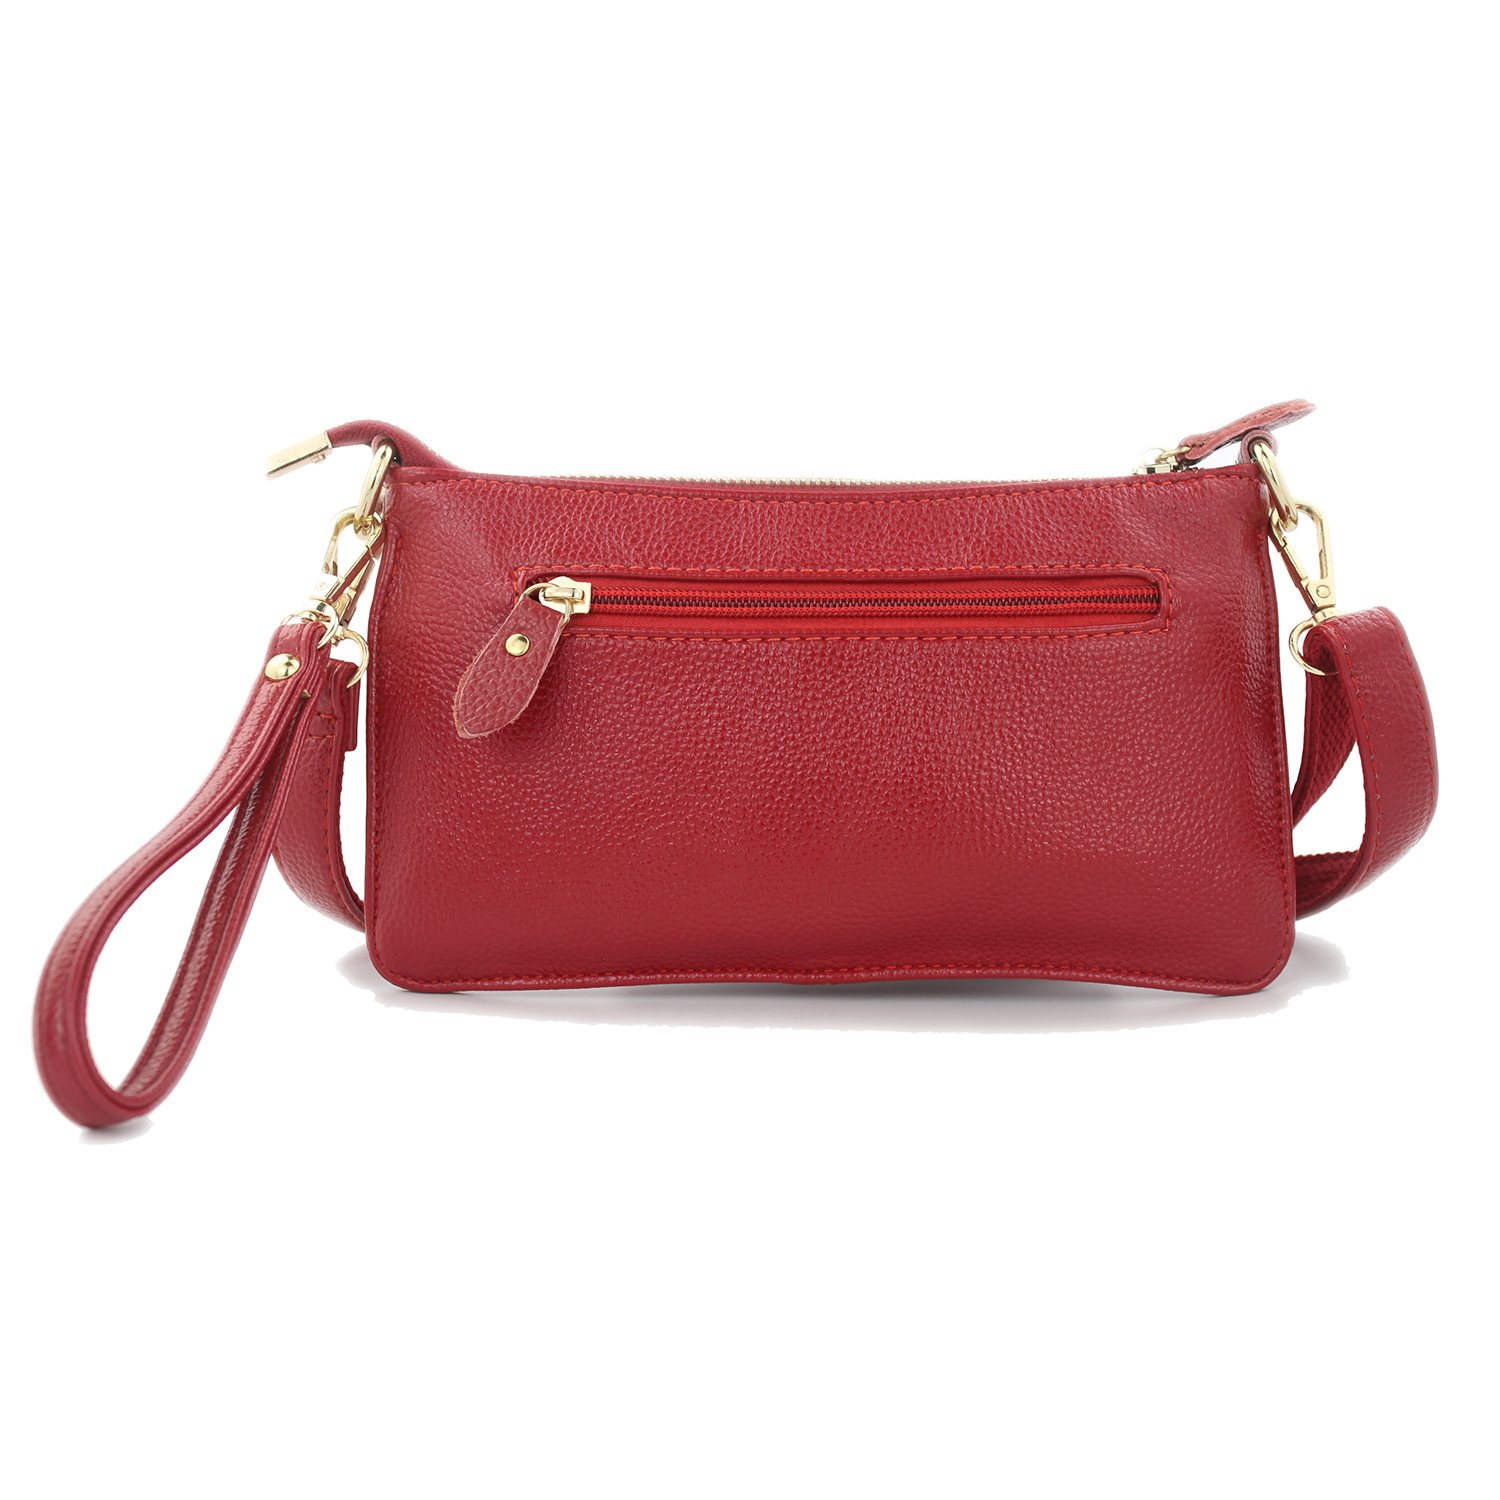 Retro Women Bags for Women 2018 Purses and Handbags Women Leather Handbags Crossbody Bags for Women Evening Clutch Bags Ladies Hand Bags Shoulder Women Messenger Bags (Wire Red)